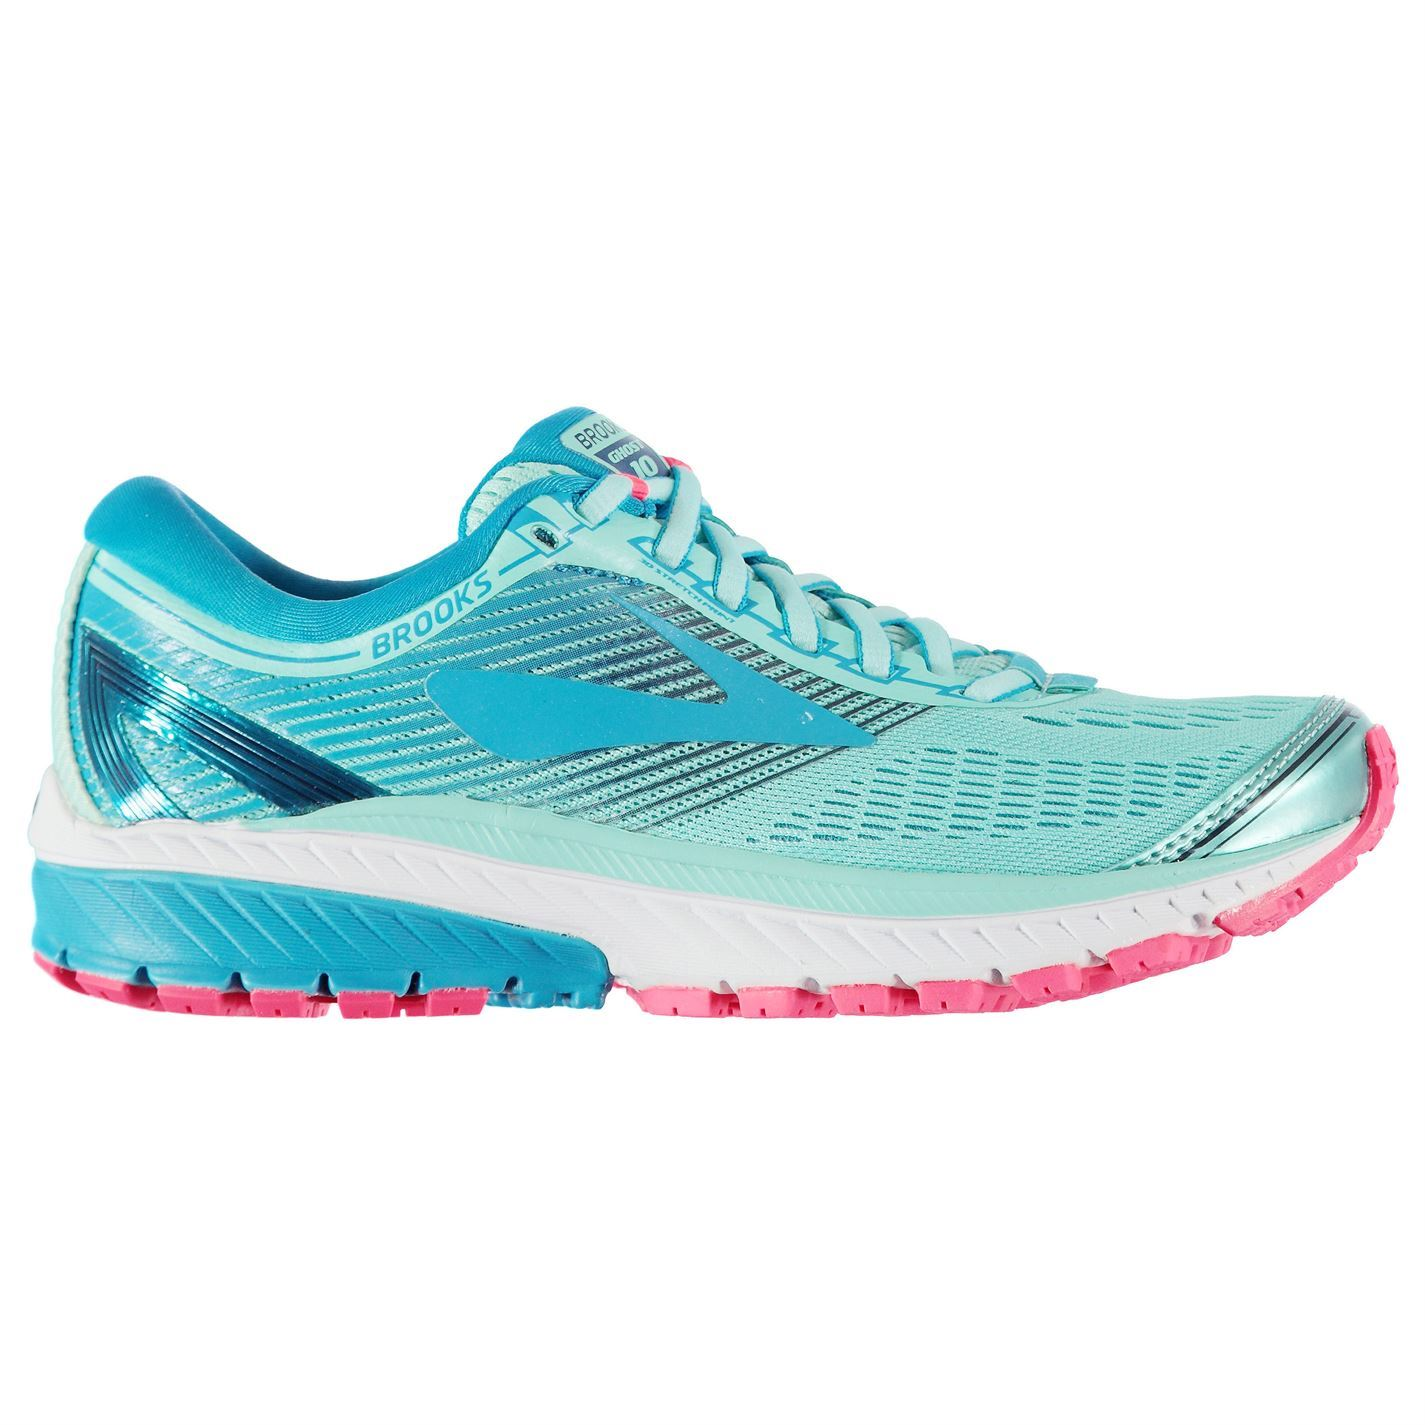 8e856c7a27c01 Brooks Ghost 10 Running Shoes Road Womens